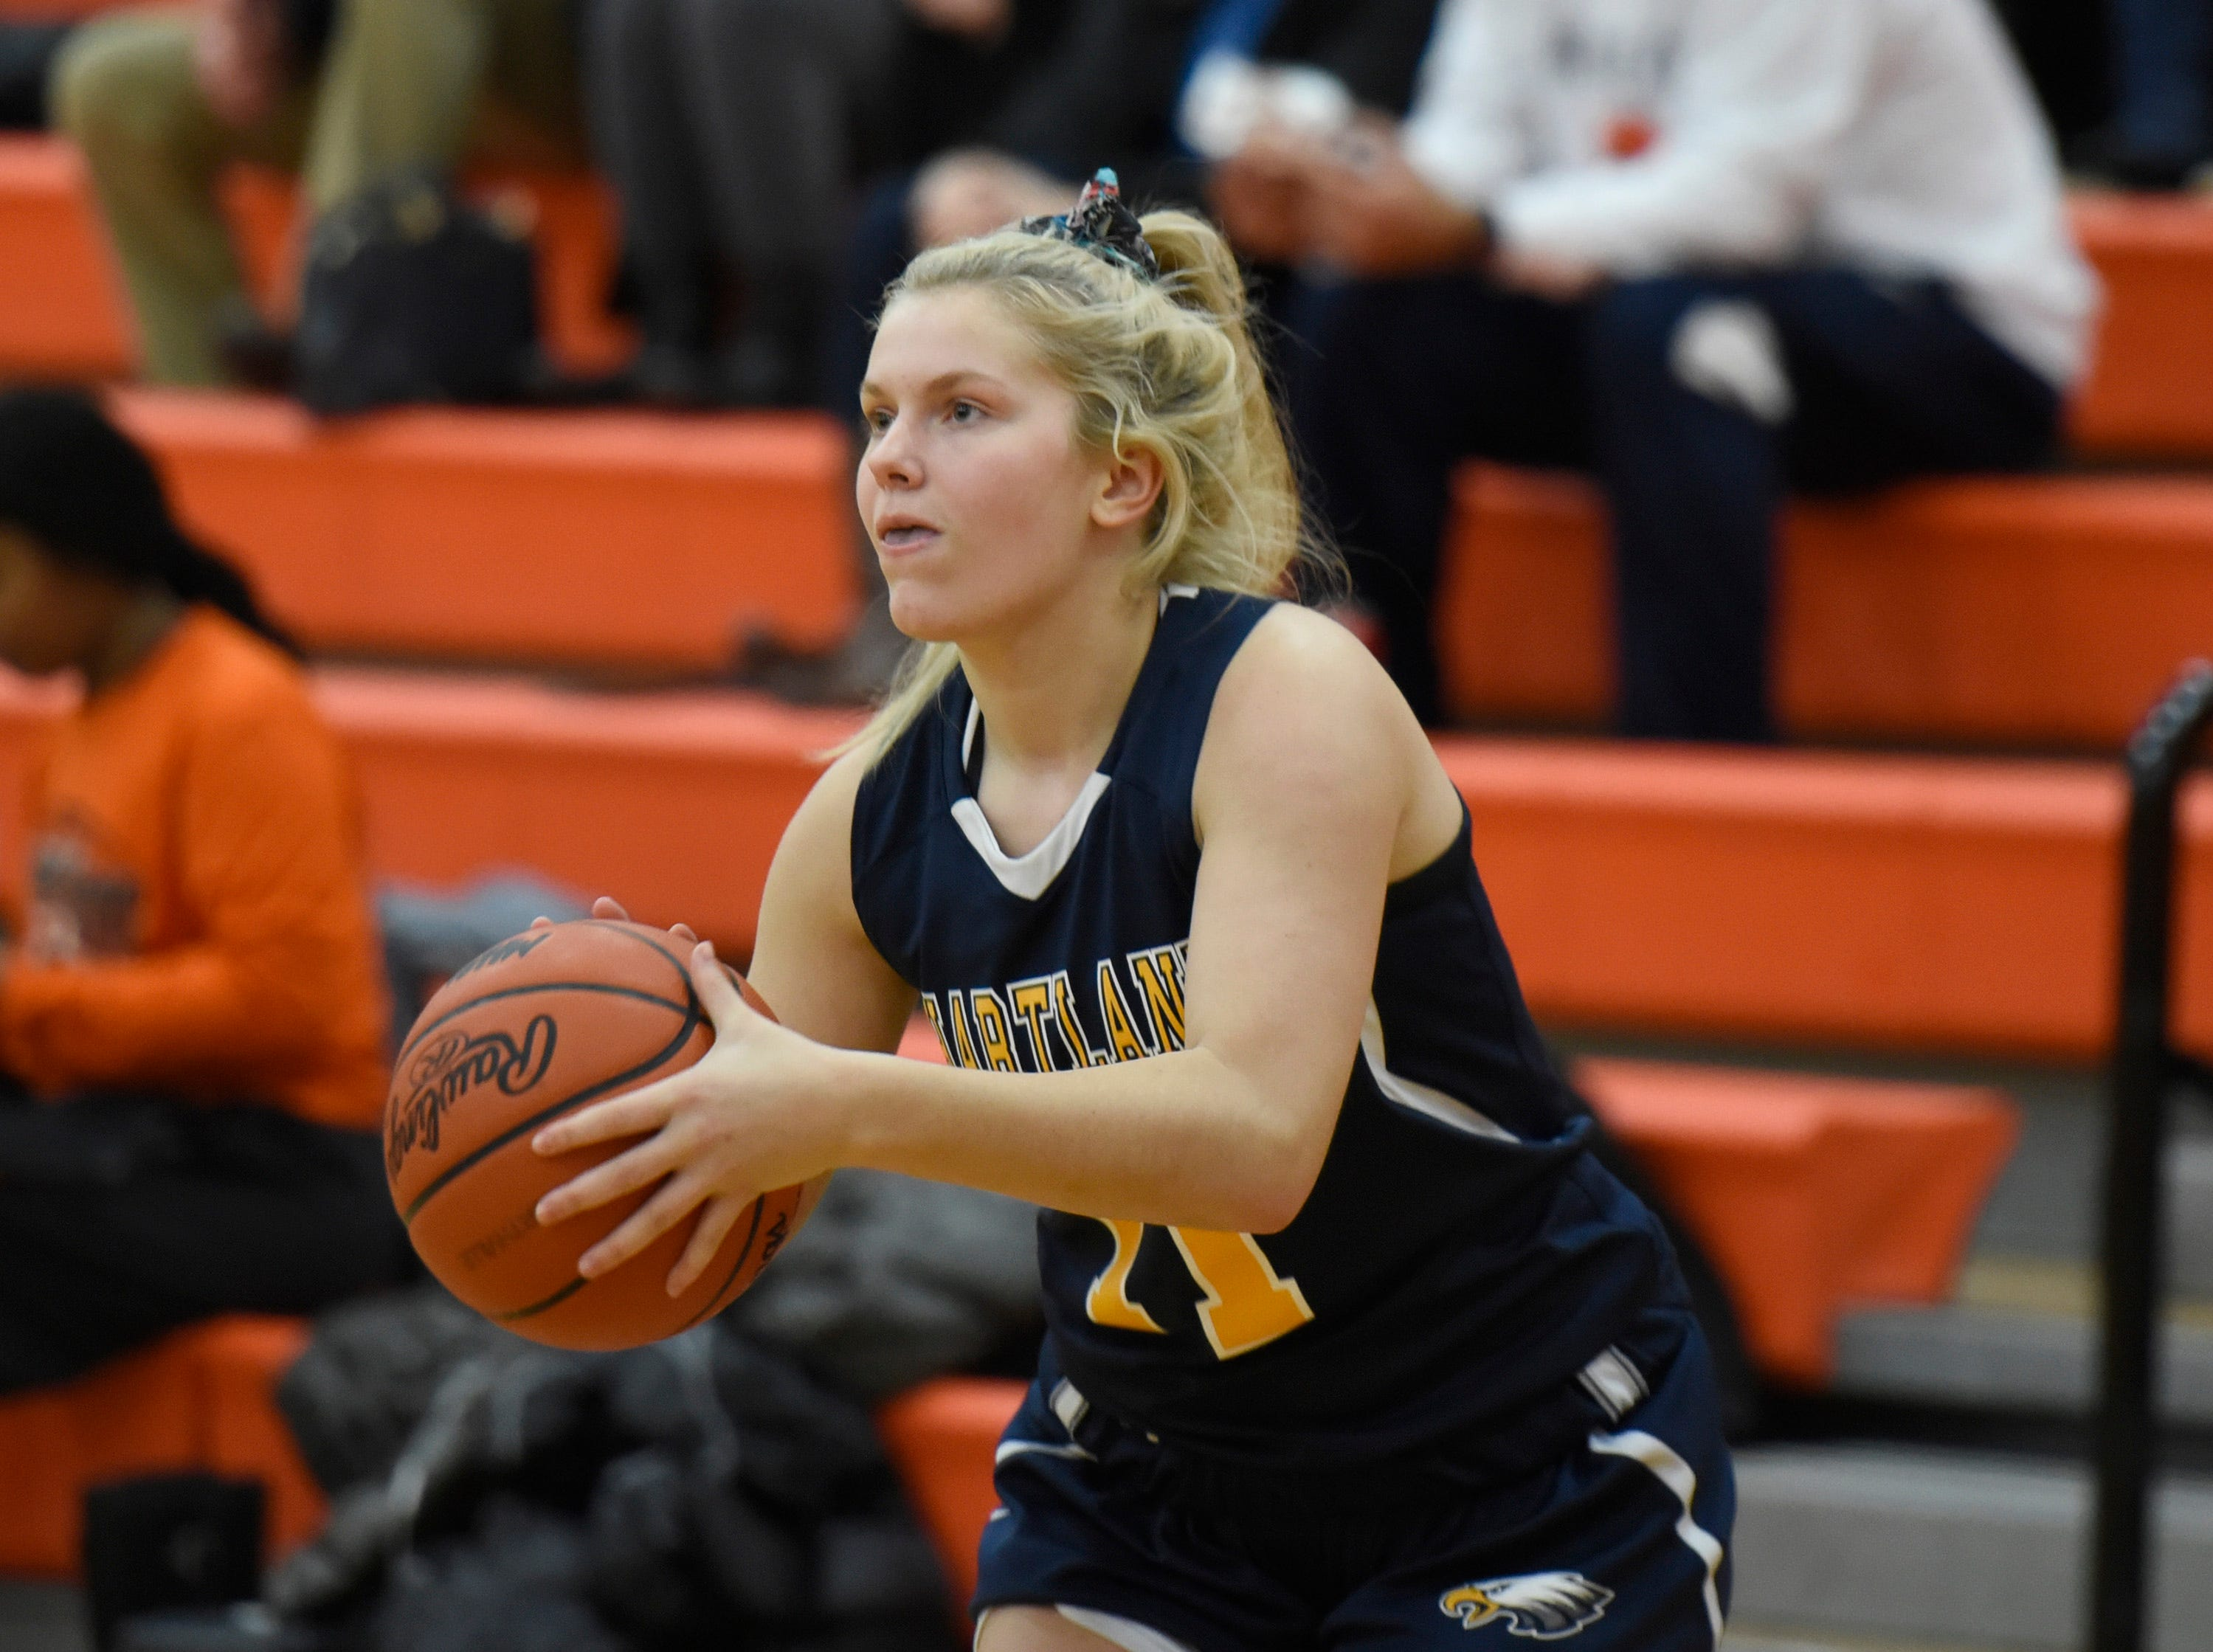 Hartland's Tess Klavon (21) during a KLAA match up between the Eagles and Mustangs at Northville Jan. 8, 2019